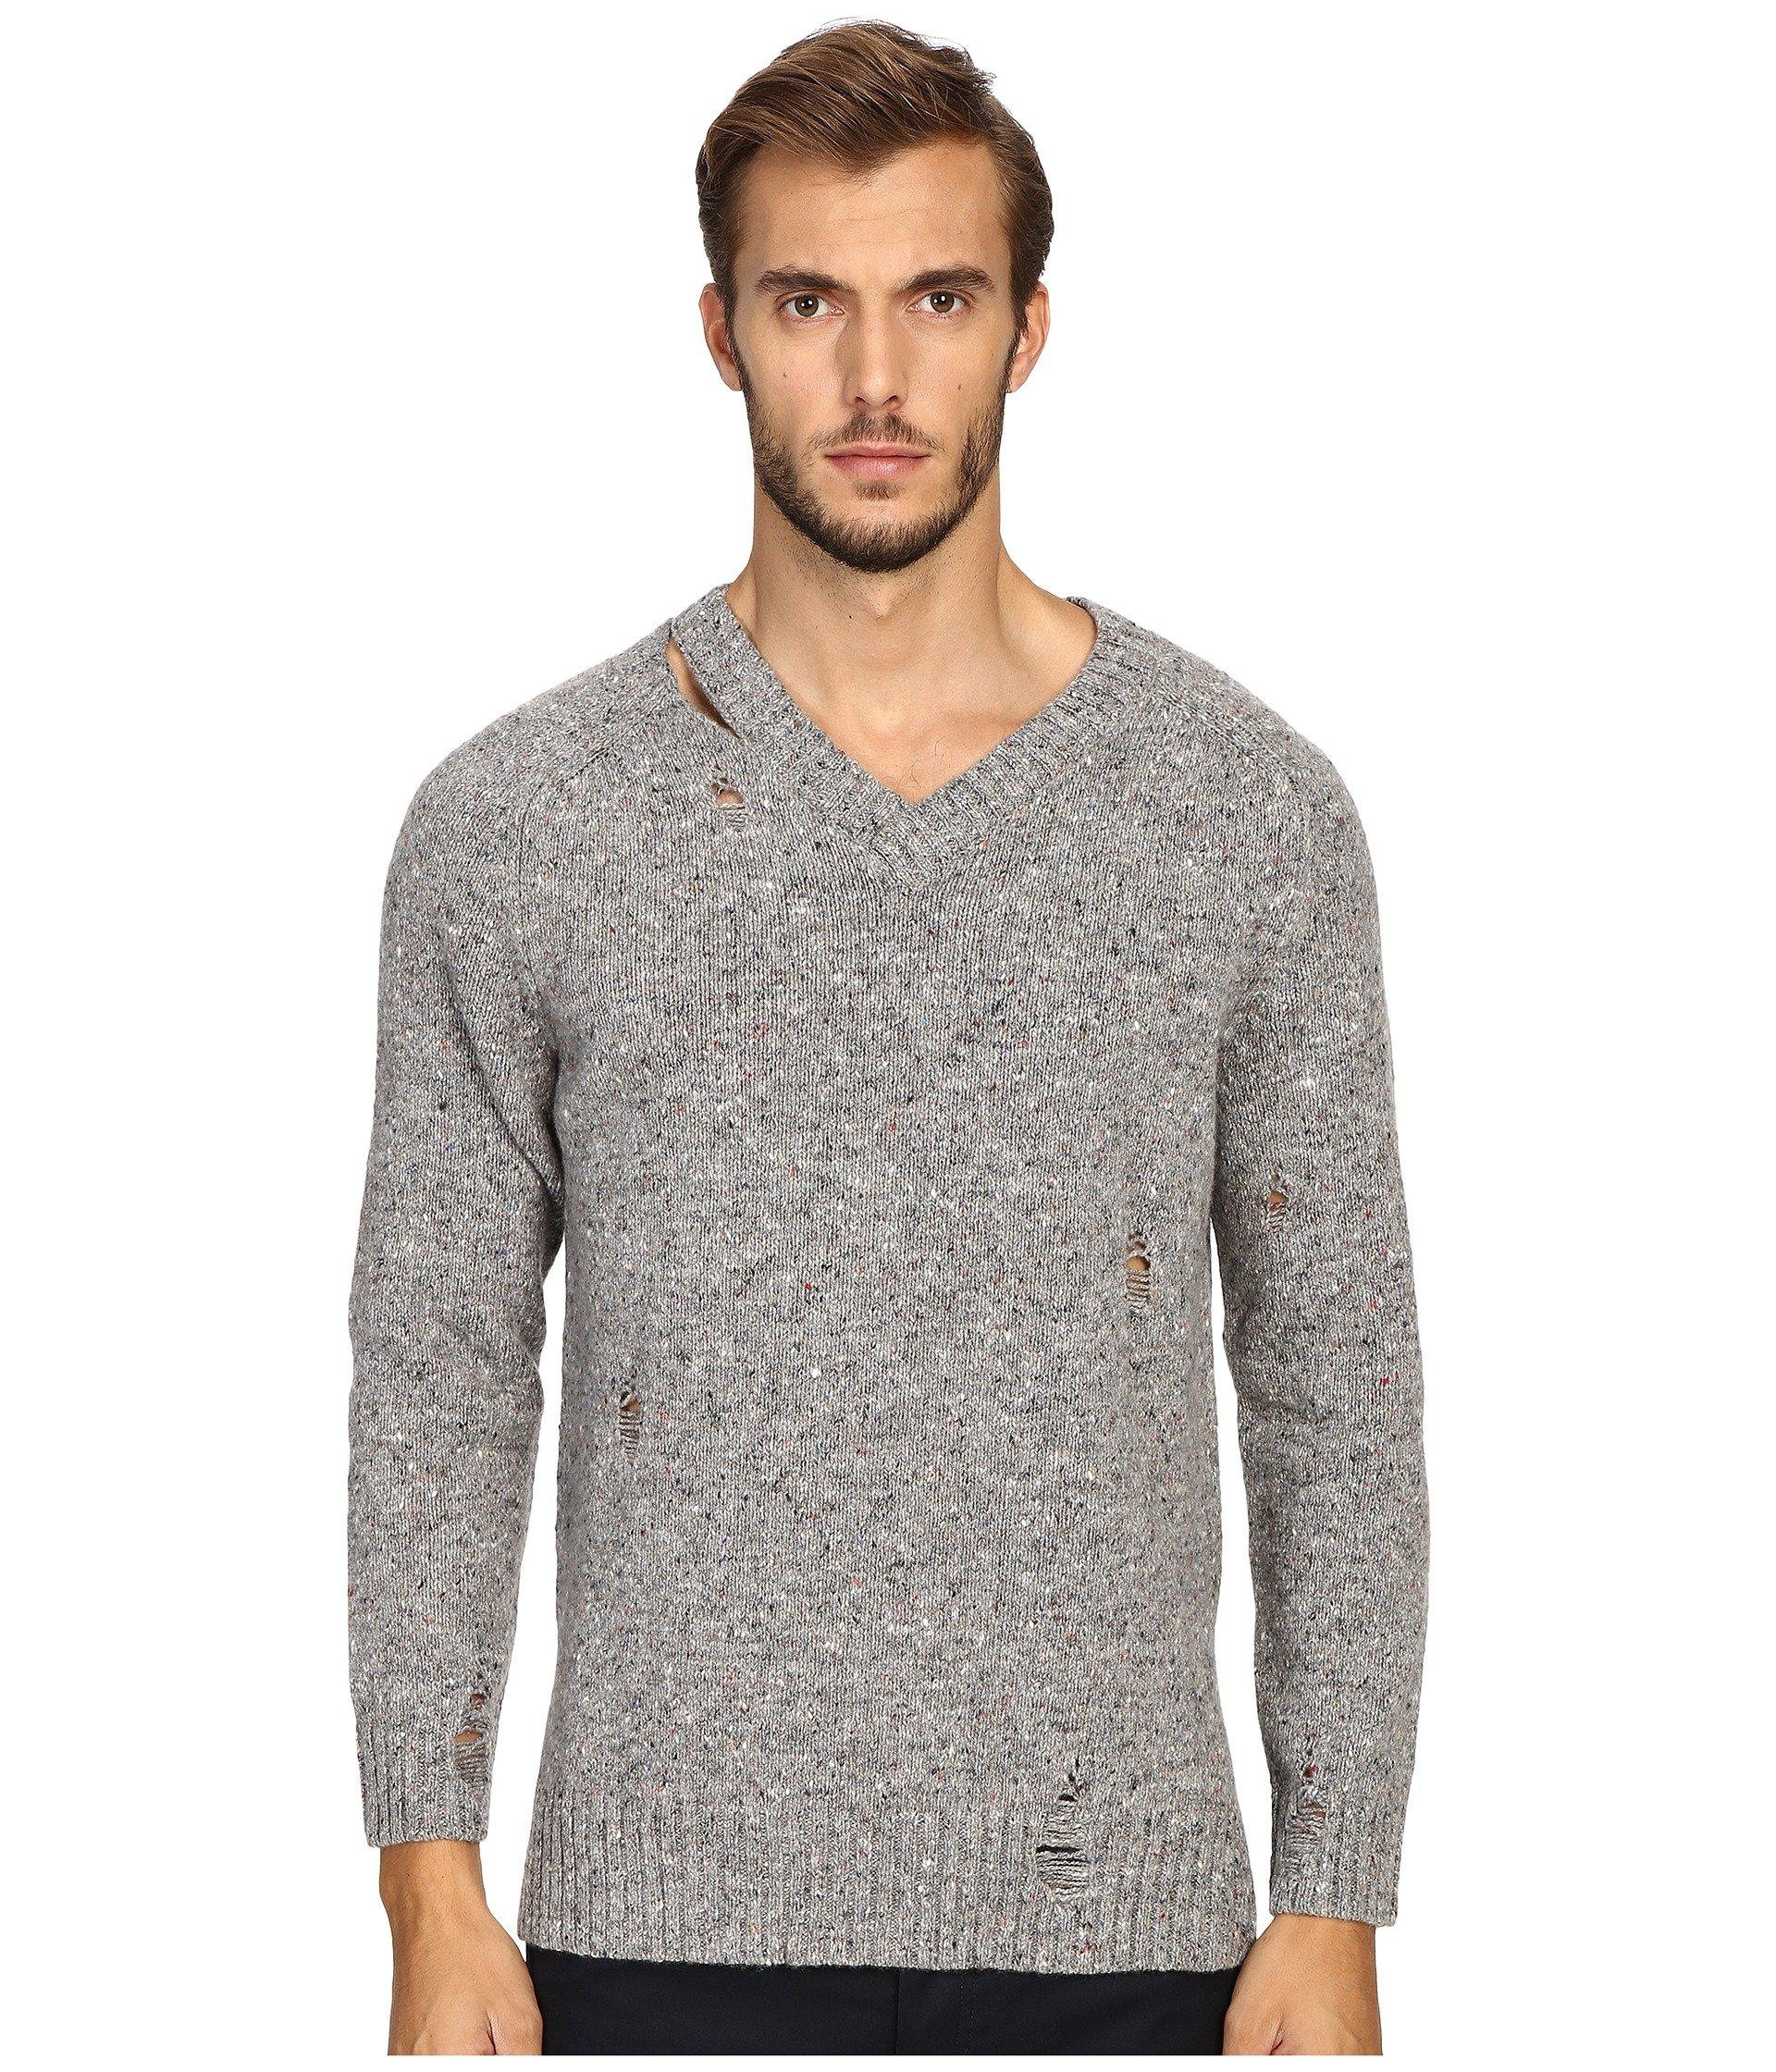 Marc Jacobs Olympia Knit Sweater In Grey